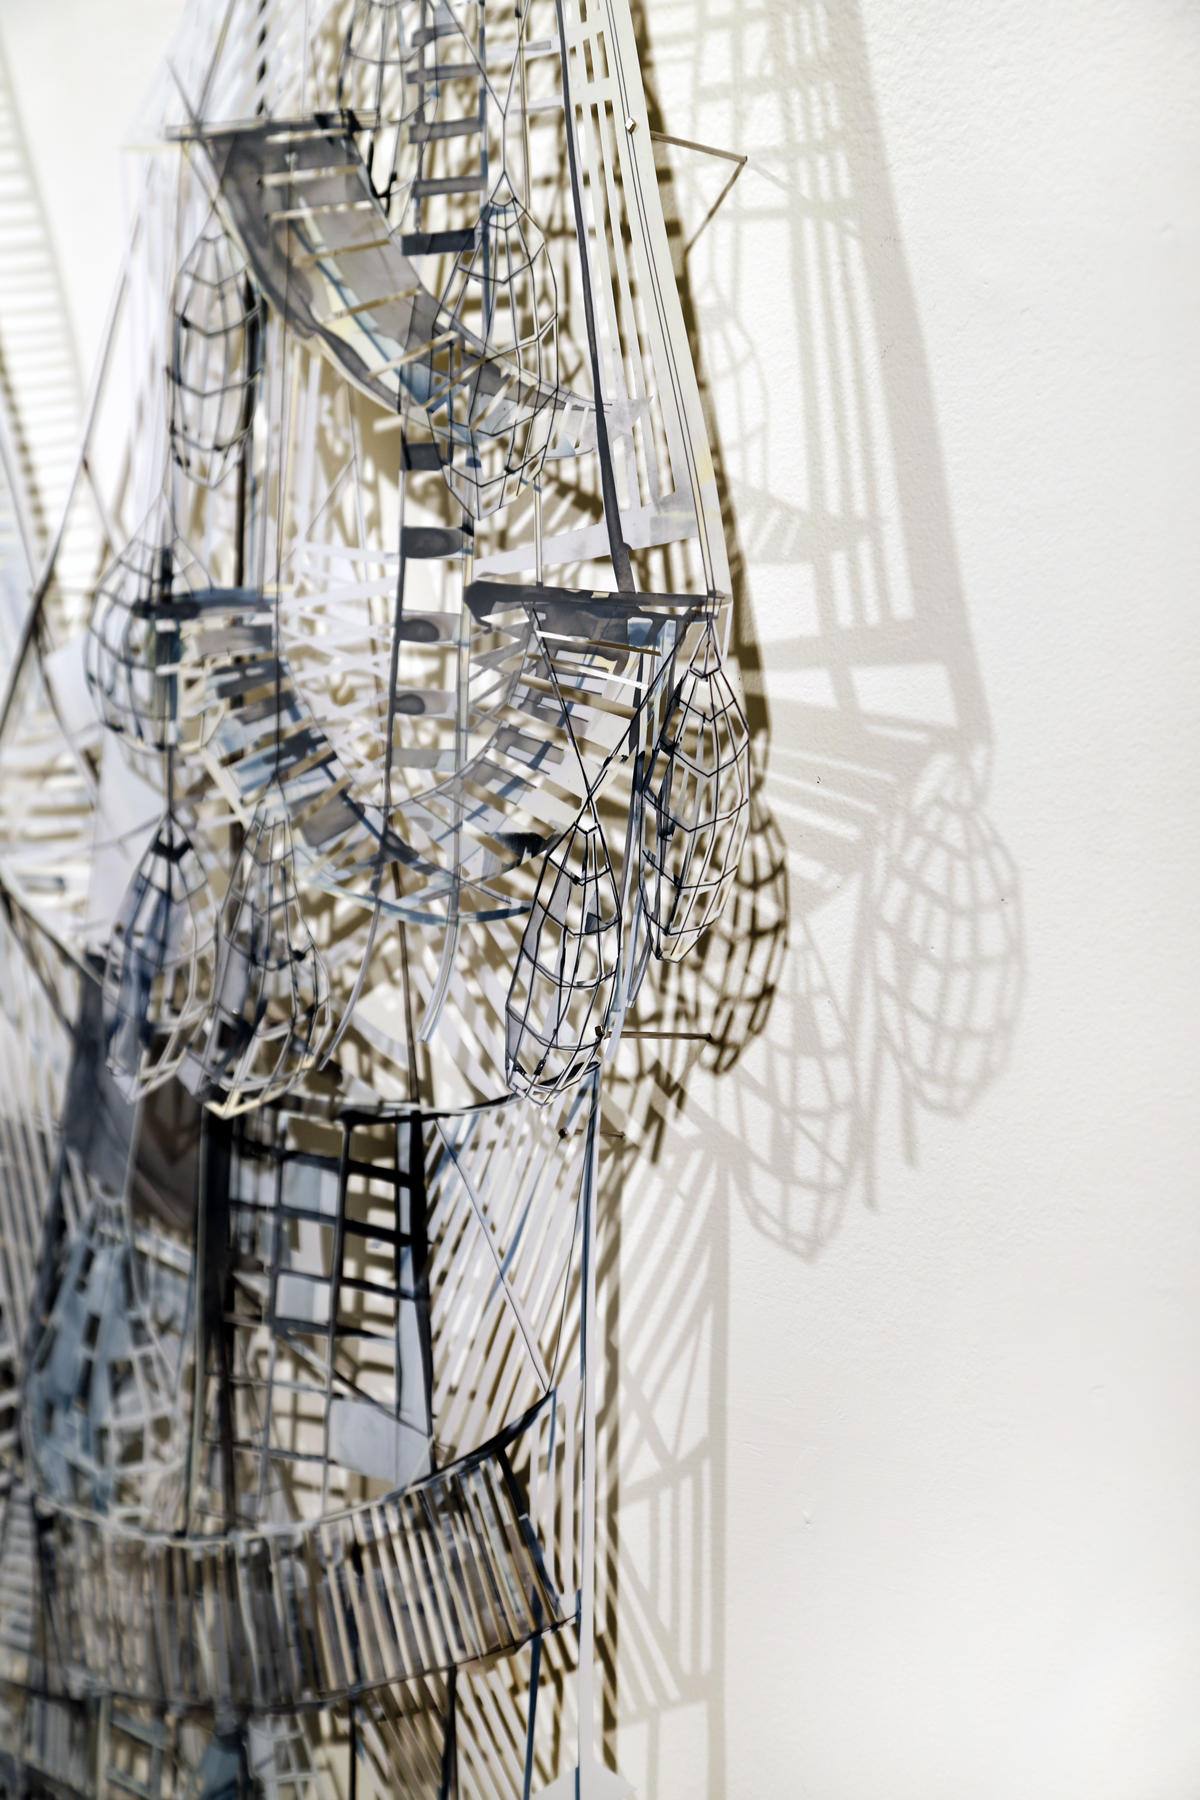 Invisible Cities - Sequester (detail)